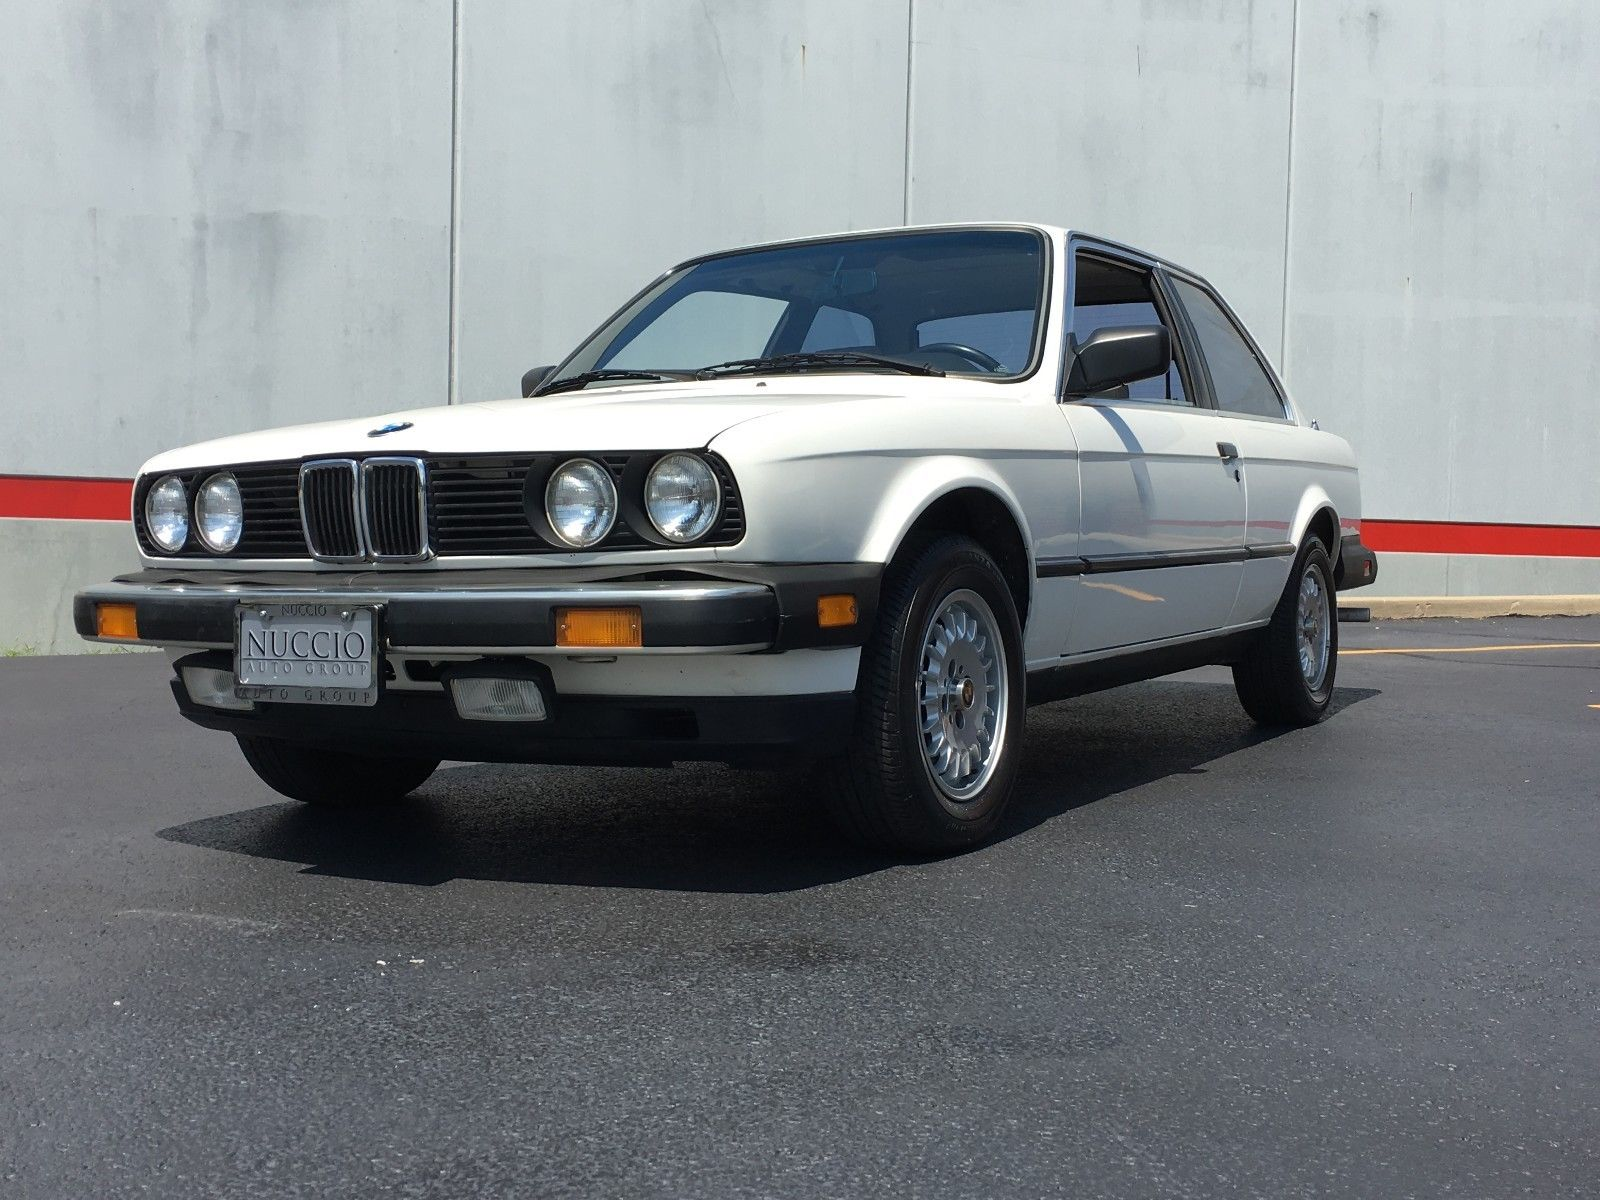 hight resolution of awesome 1985 bmw 3 series 325e 85 bmw 325e white tan 85k miles 2 owner recent timing belt and water pump 2019